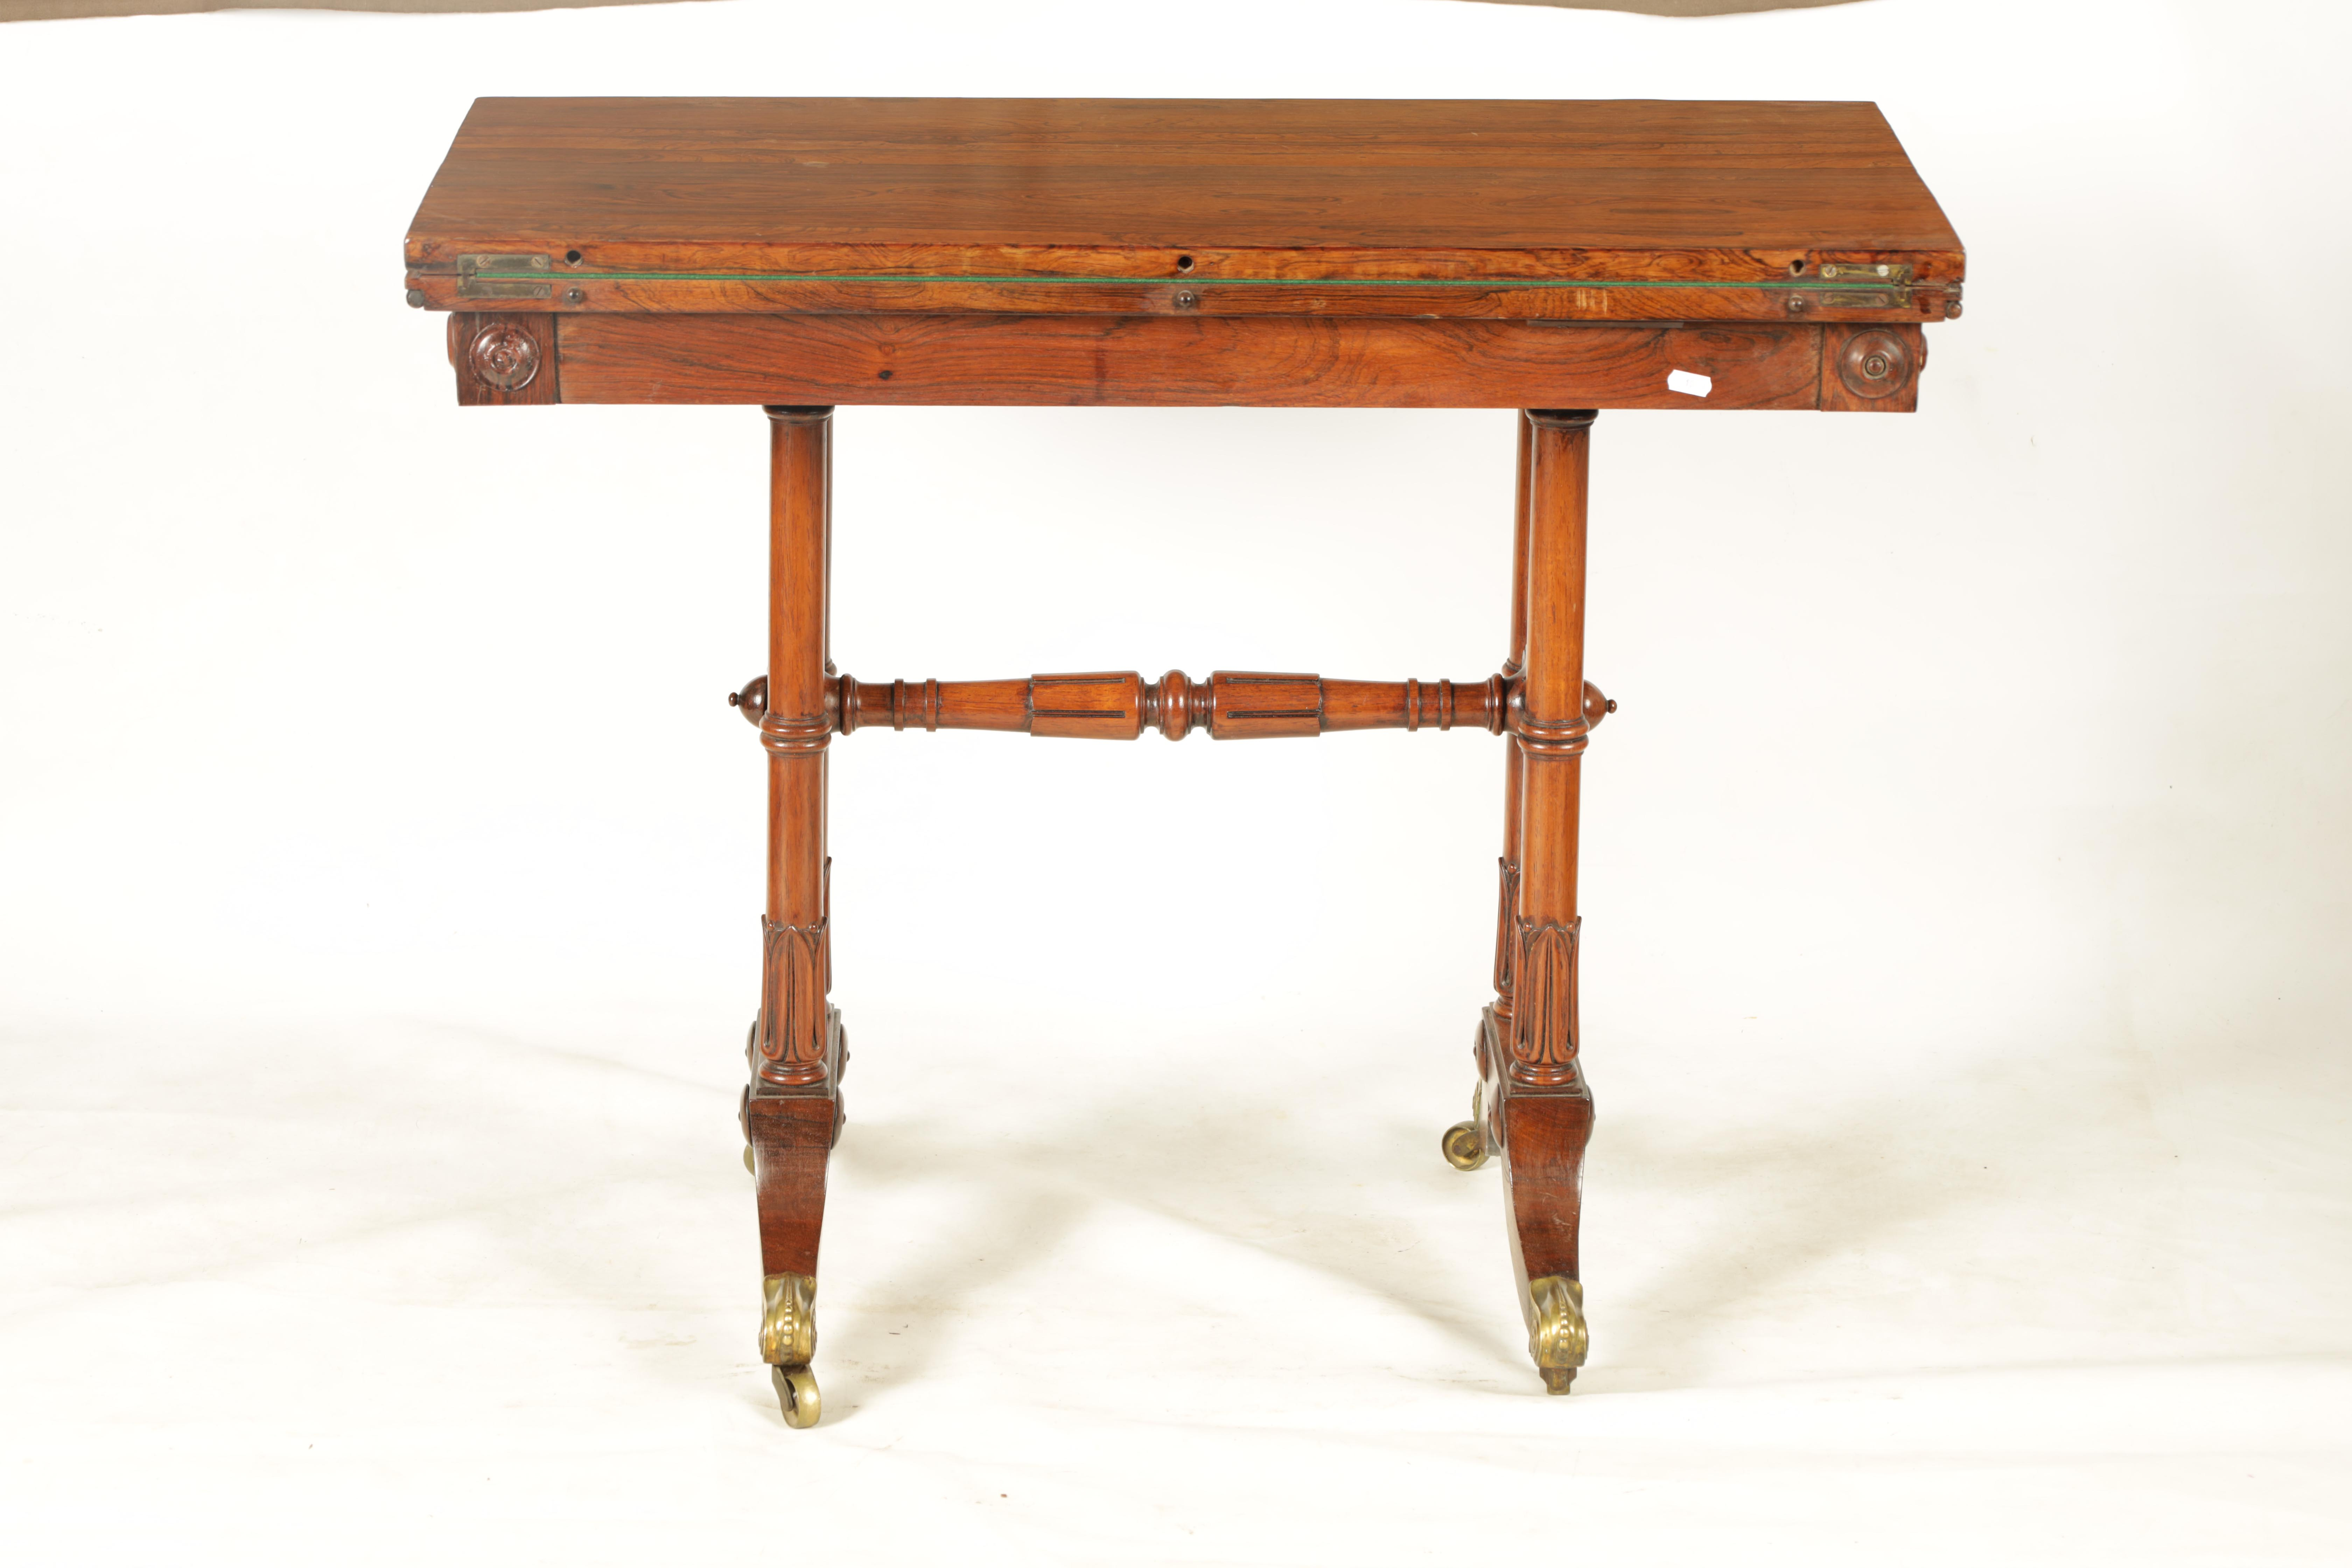 A REGENCY FIGURED ROSEWOOD CARD TABLE IN THE MANNER OF T & G SEDDON with revolving top revealing a - Image 9 of 9